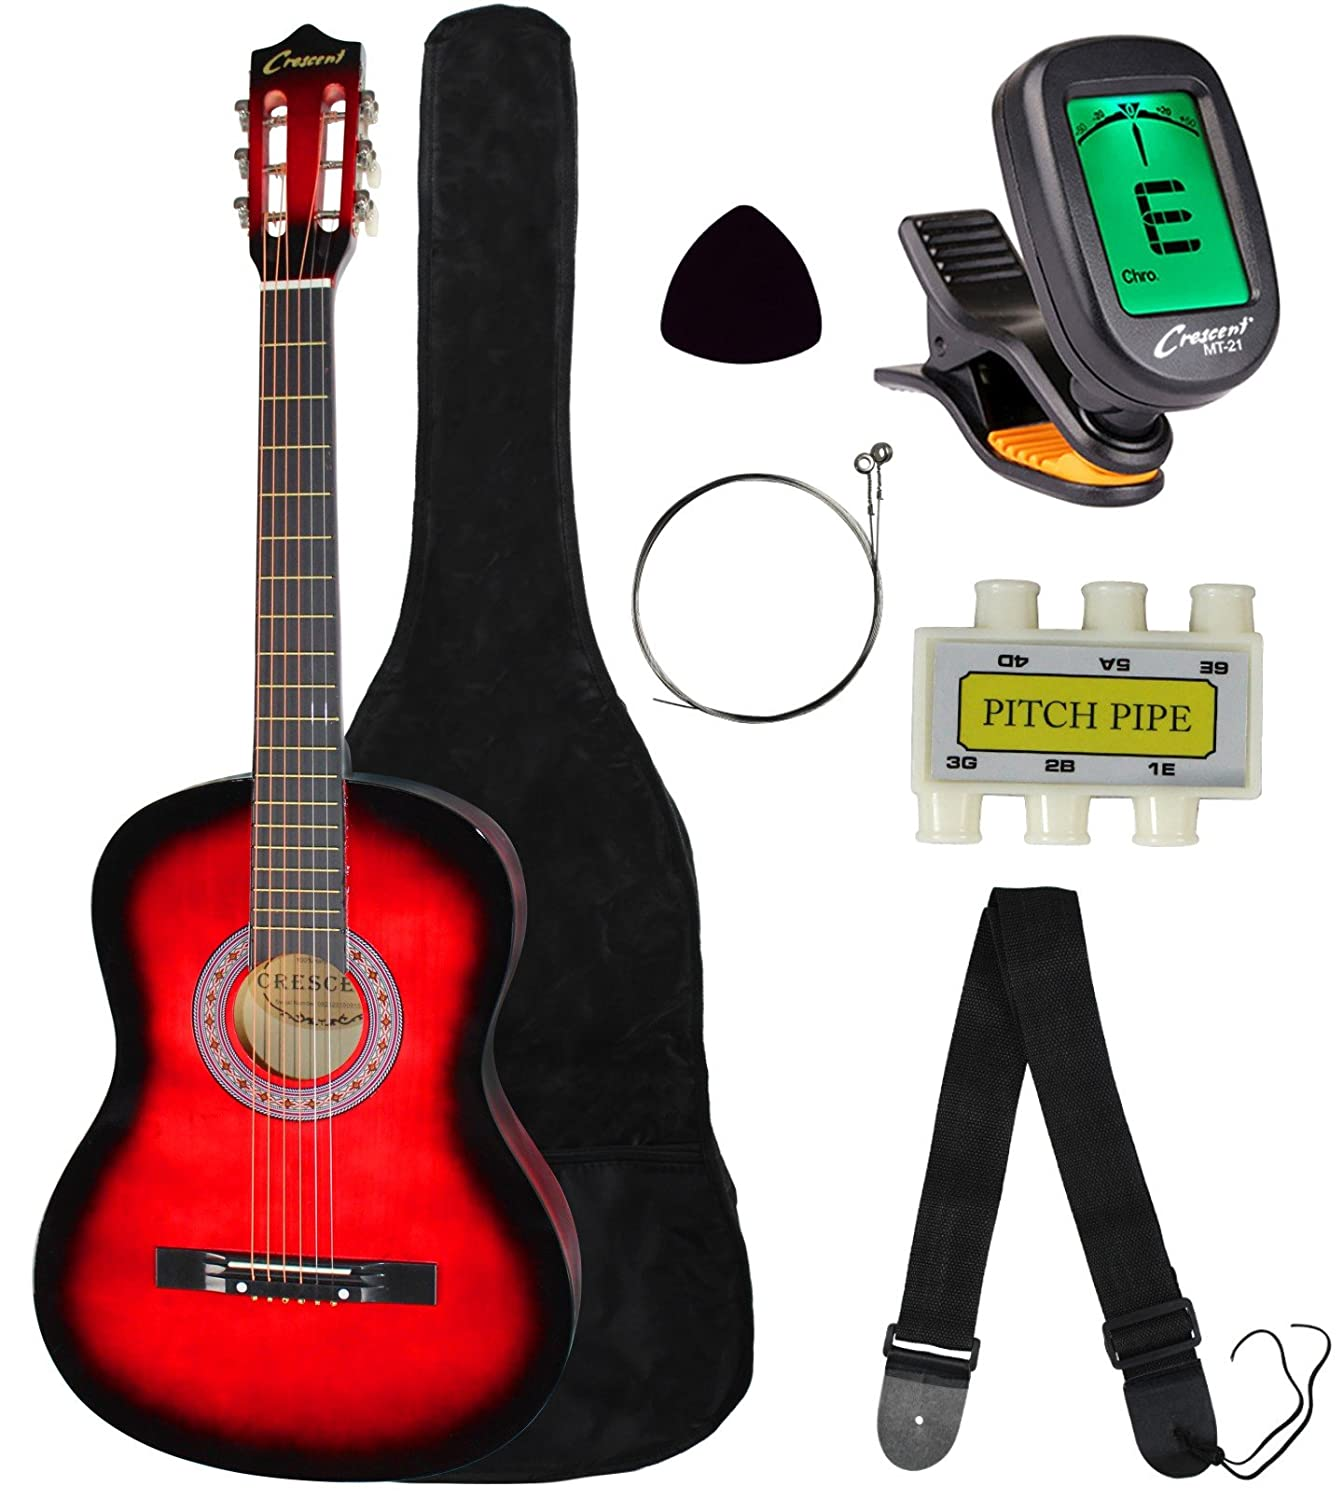 Crescent MG38-PUL 38 Acoustic Guitar Starter Package, Purple (Includes CrescentTM Digital E-Tuner)